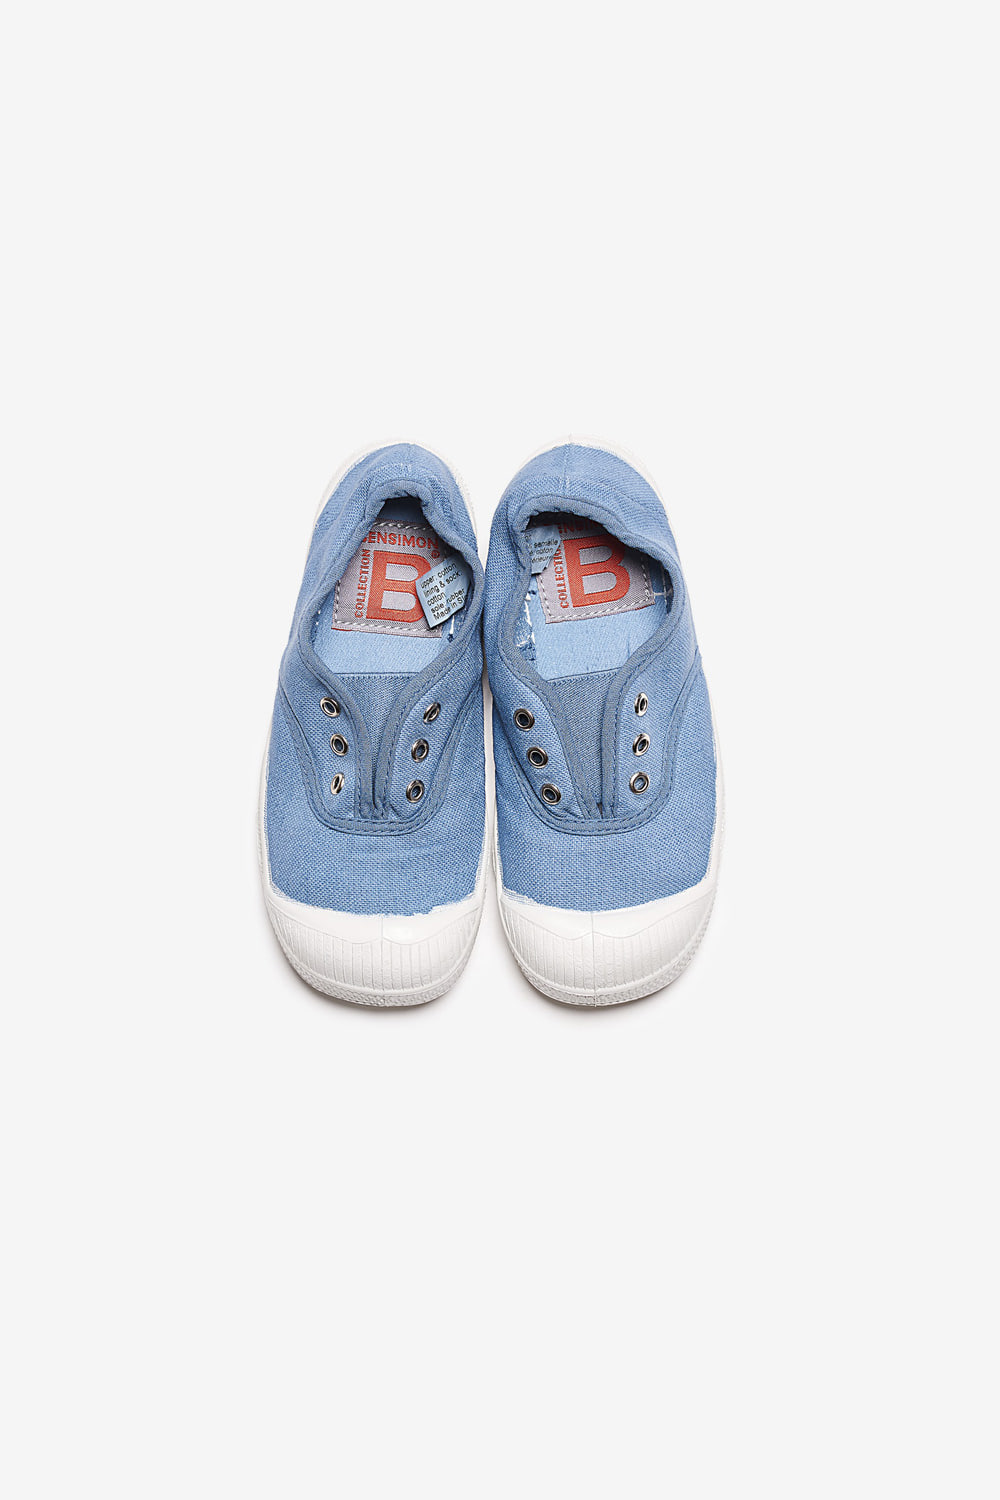 [KID Elly] Denim BS9SSO302DM